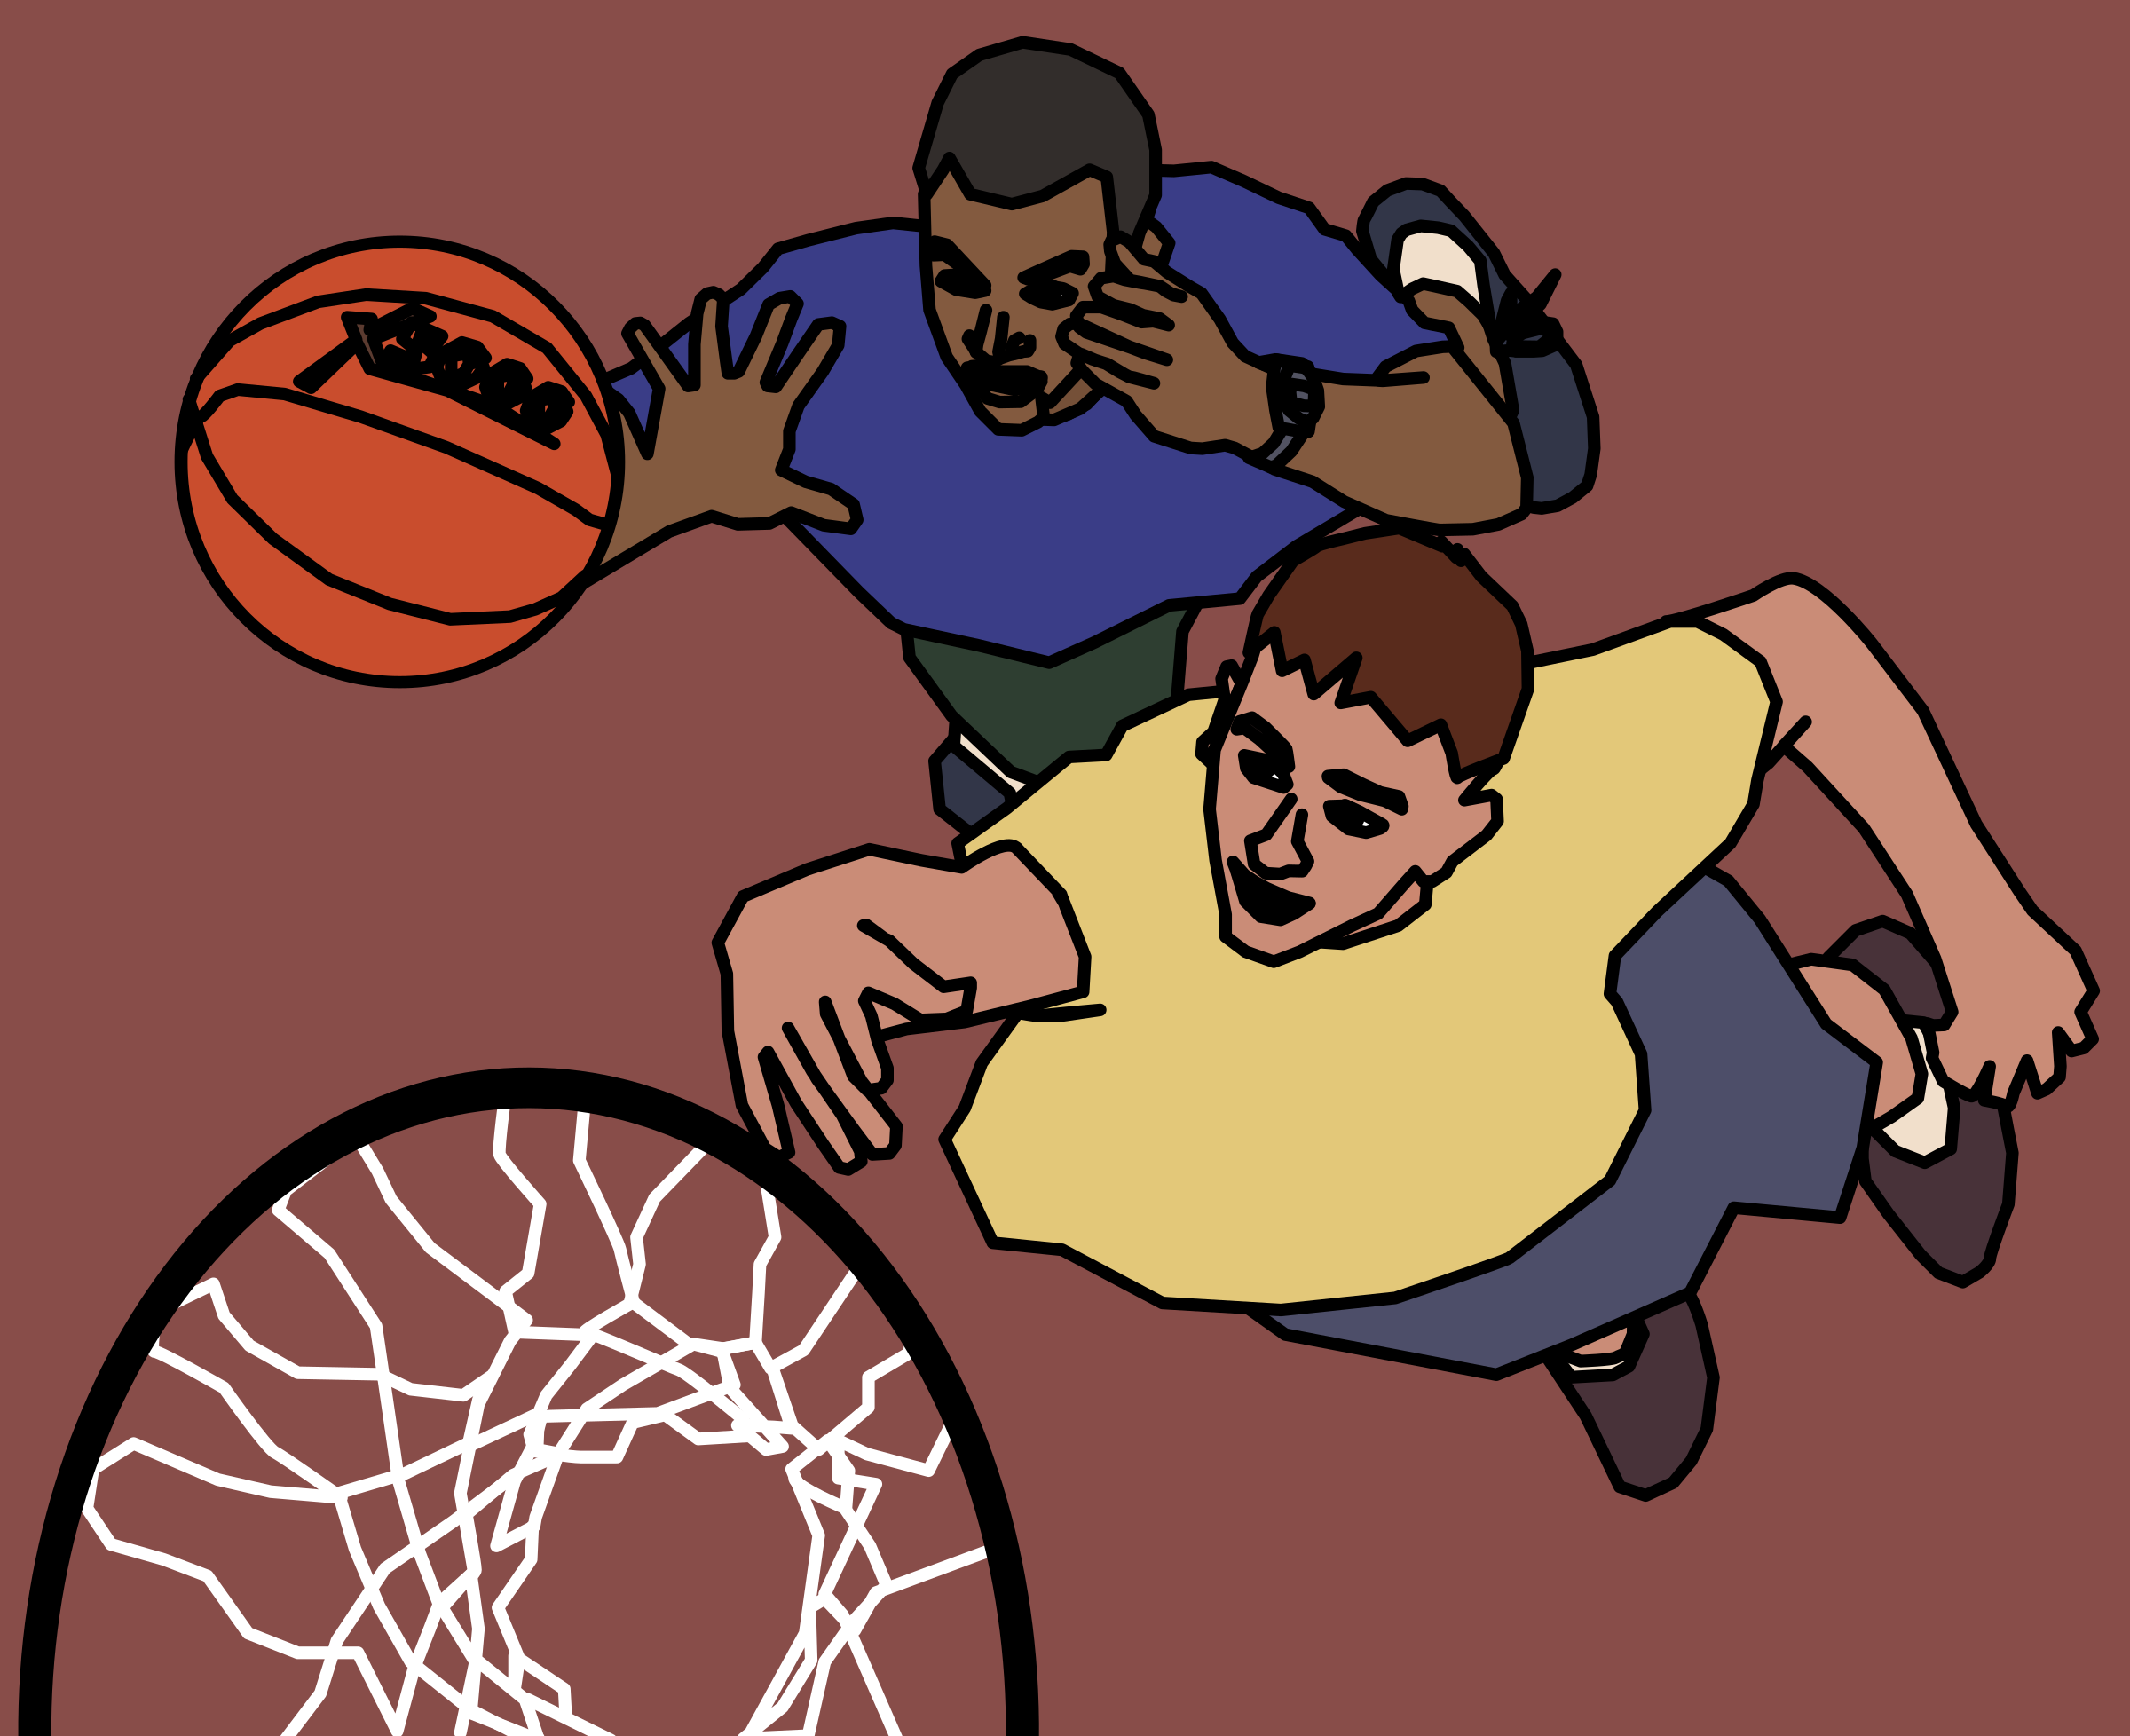 Two Guys Play Basketball by j4p4n